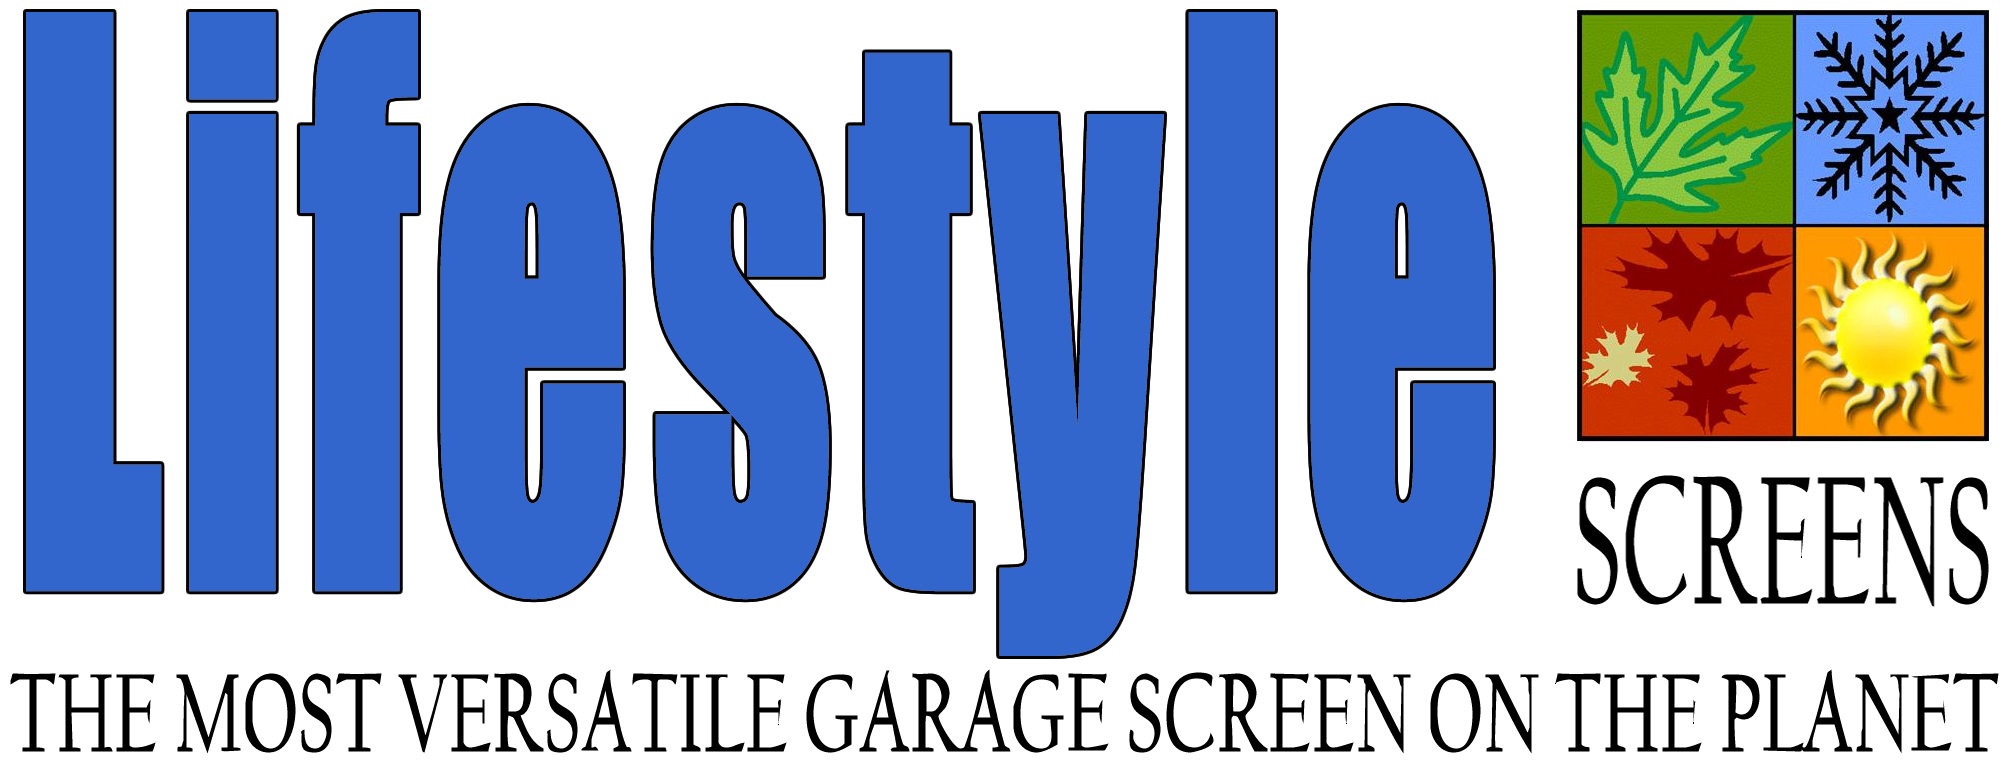 Lifestyle_logo_blue[1].png